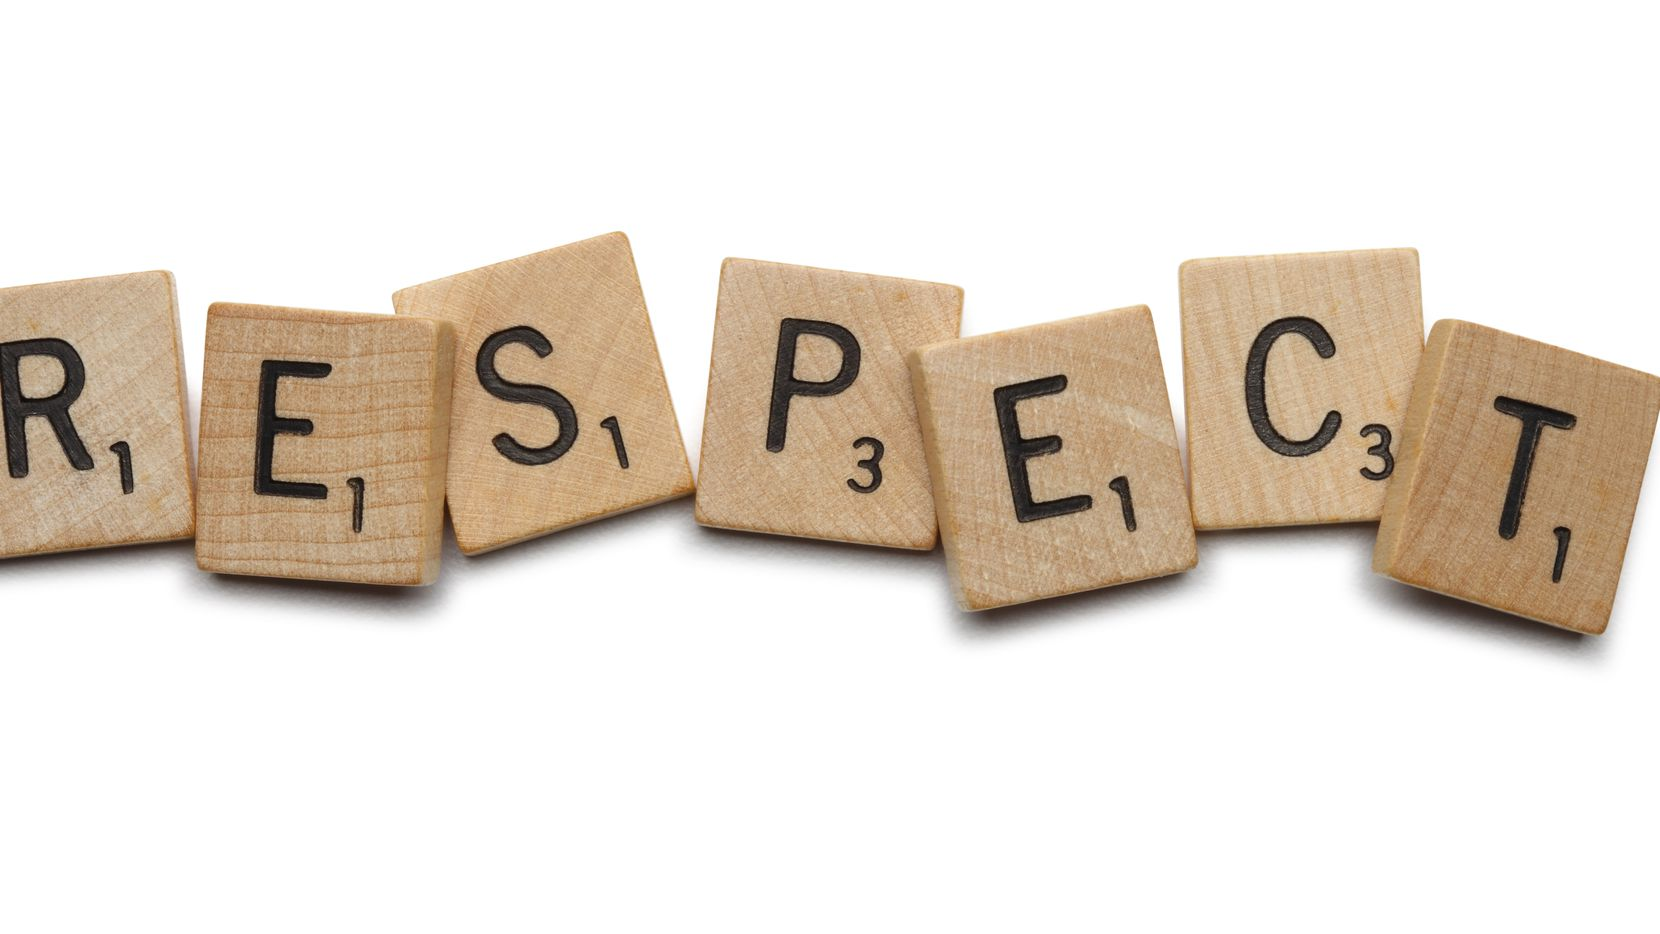 San Diego, California, USA - September 6, 2011: The word Respect spelled out with wooden Scrabble tiles. Shot on a white background in a studio setting.